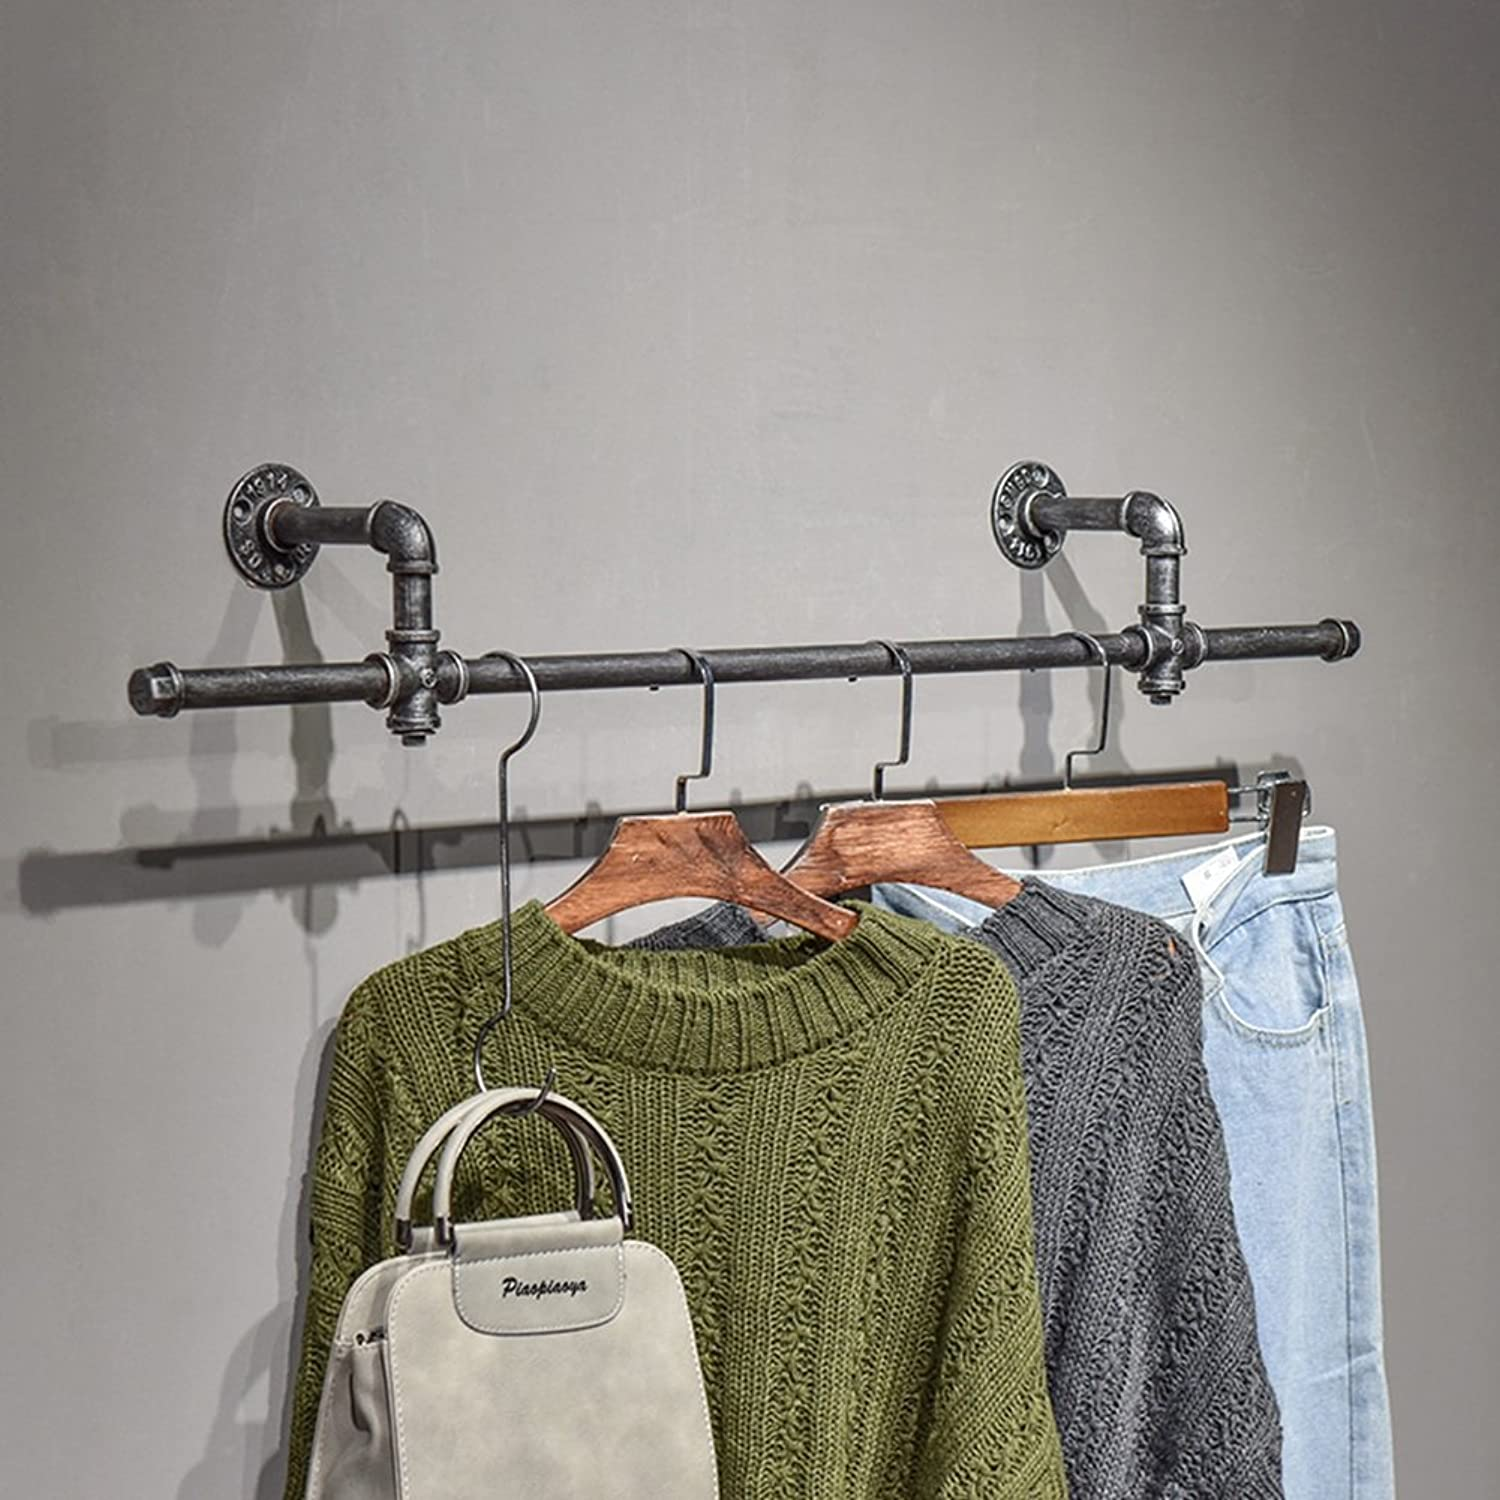 QIANGDA Coat Rack Wall Mounted Clothes-Rack Hat Hanger Display Shelf for Home Clothes Shop Village Retro Style, 4 Styles Optional (color   2 )